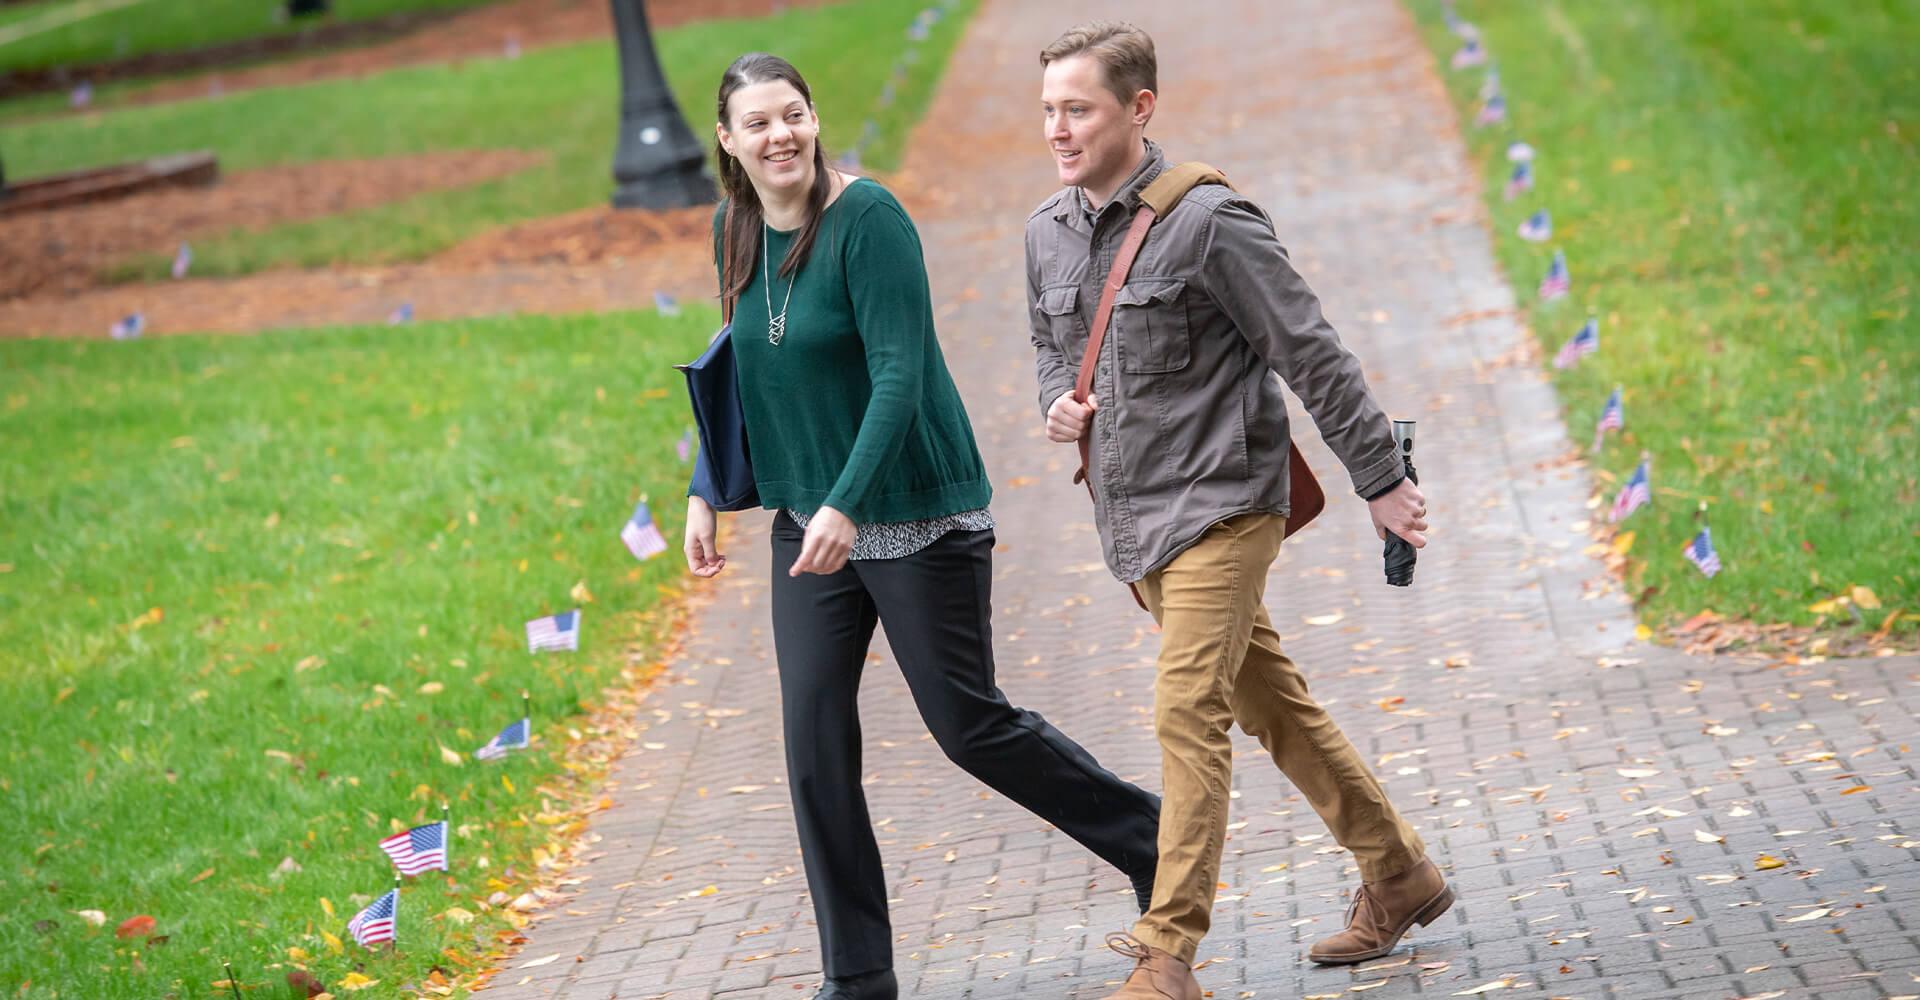 a woman and a man walking on campus